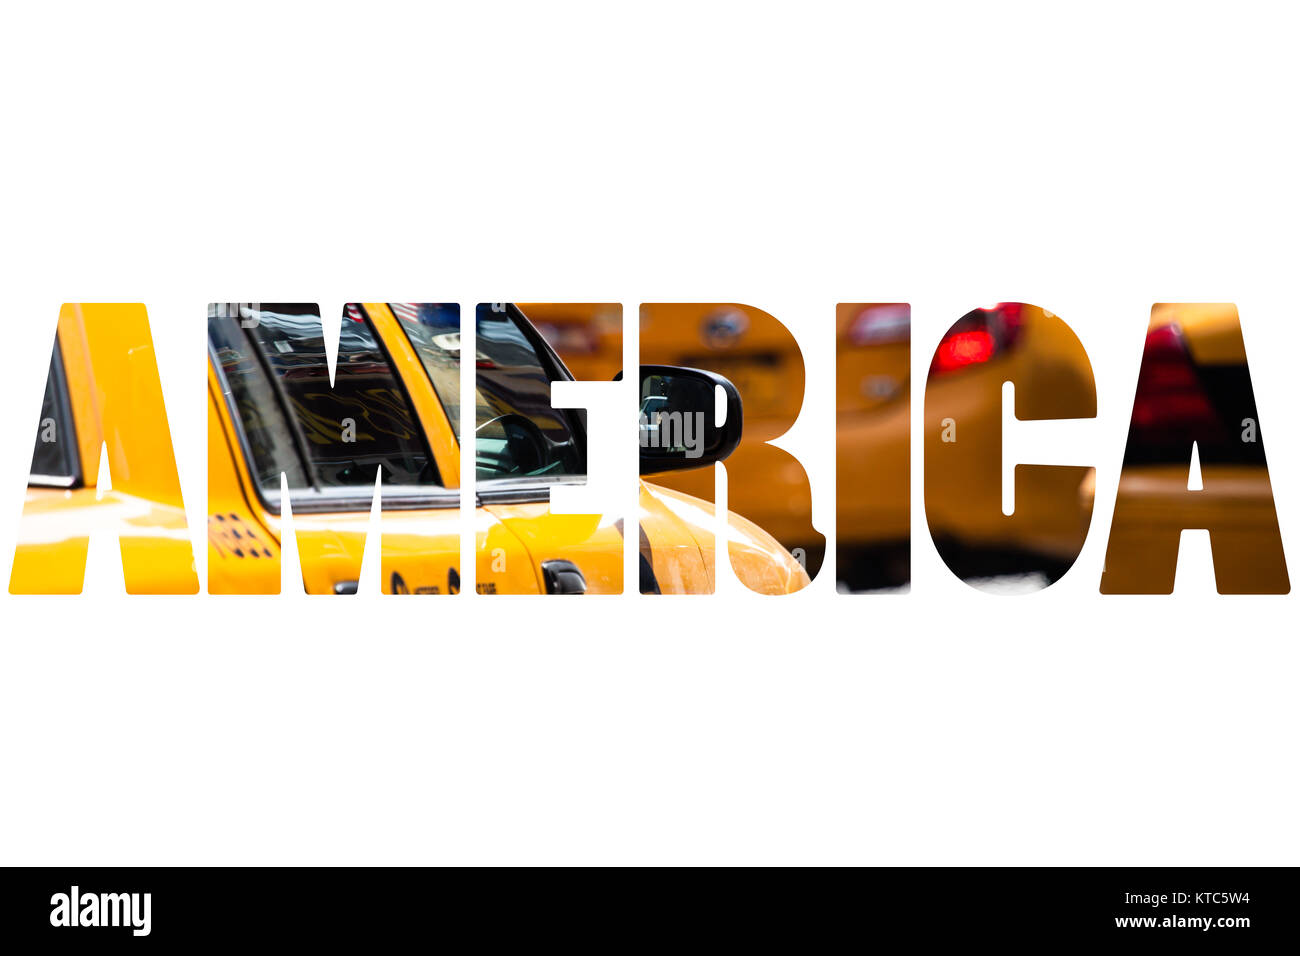 Word AMERICA over traditional symbols. - Stock Image